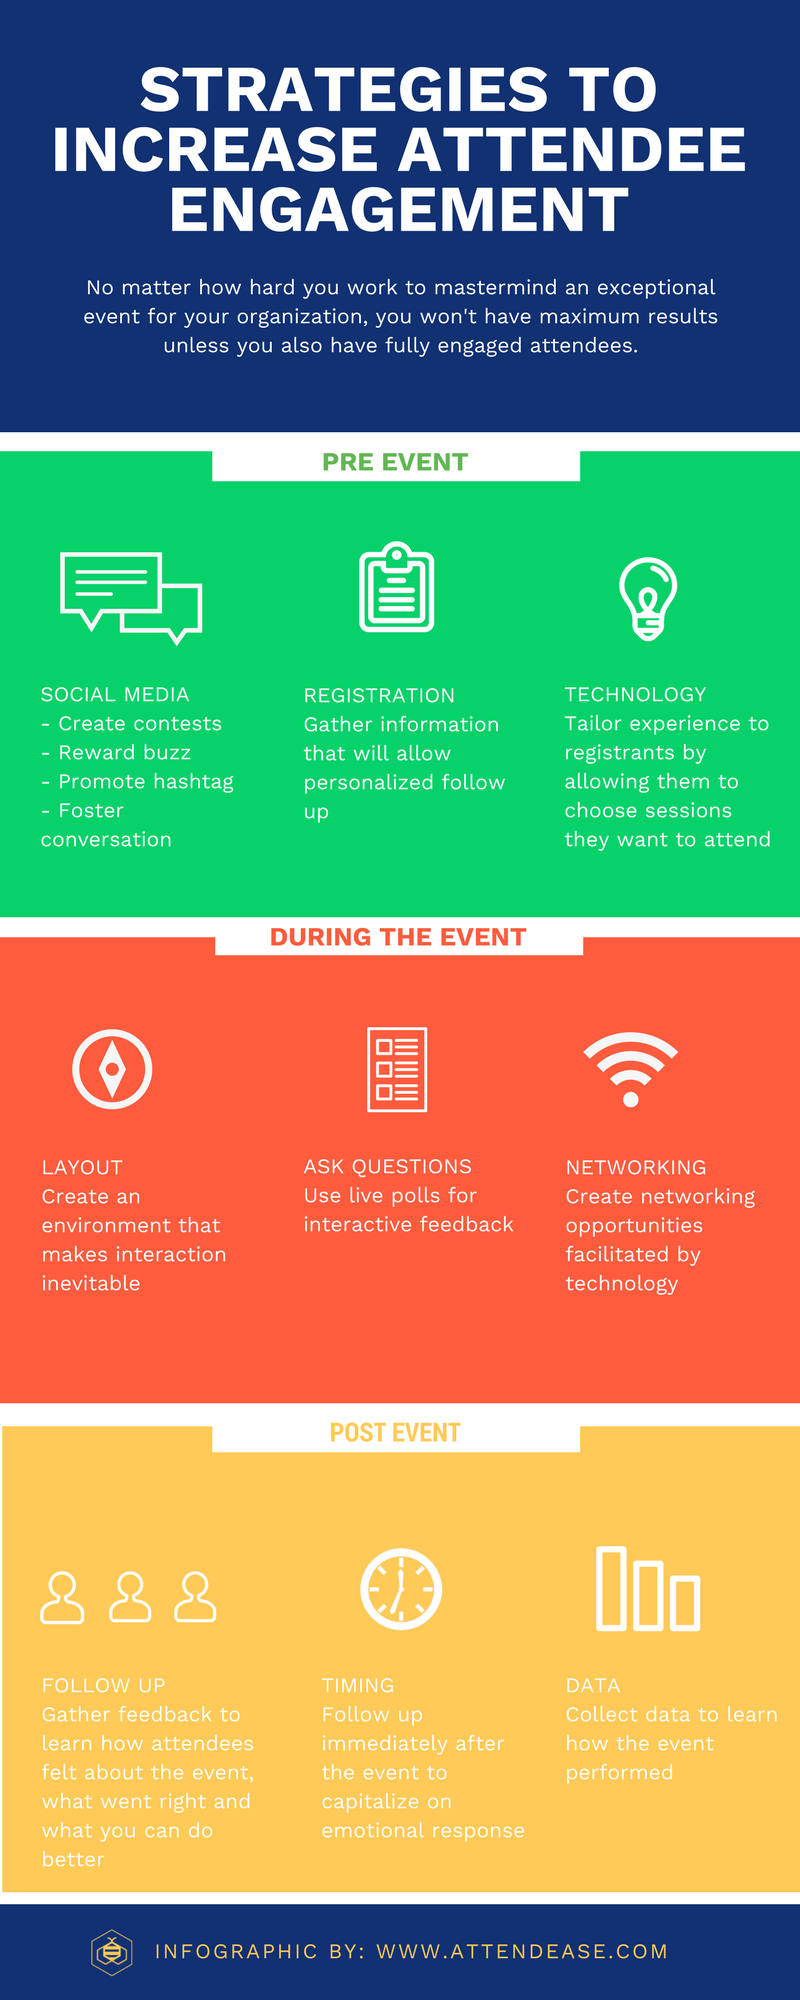 Infographic_ Strategies to increase attendee engagement (1).png